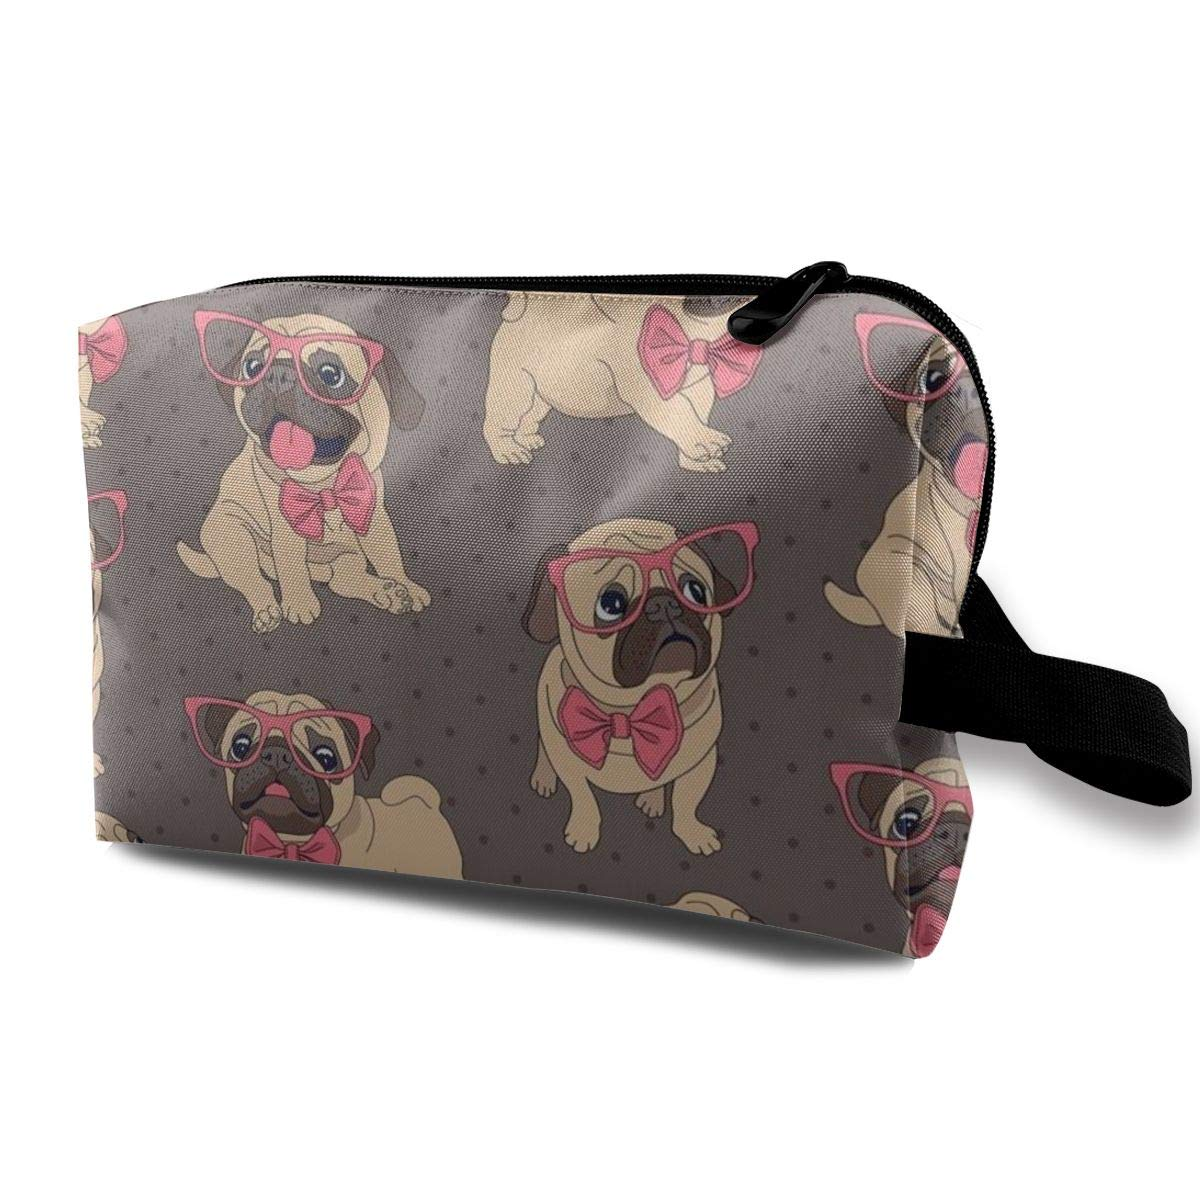 Toiletry Bag - Cosmetic Makeup Travel Organizer for Men & Women, Cute Pug Dog With Pink Tie And Glasses